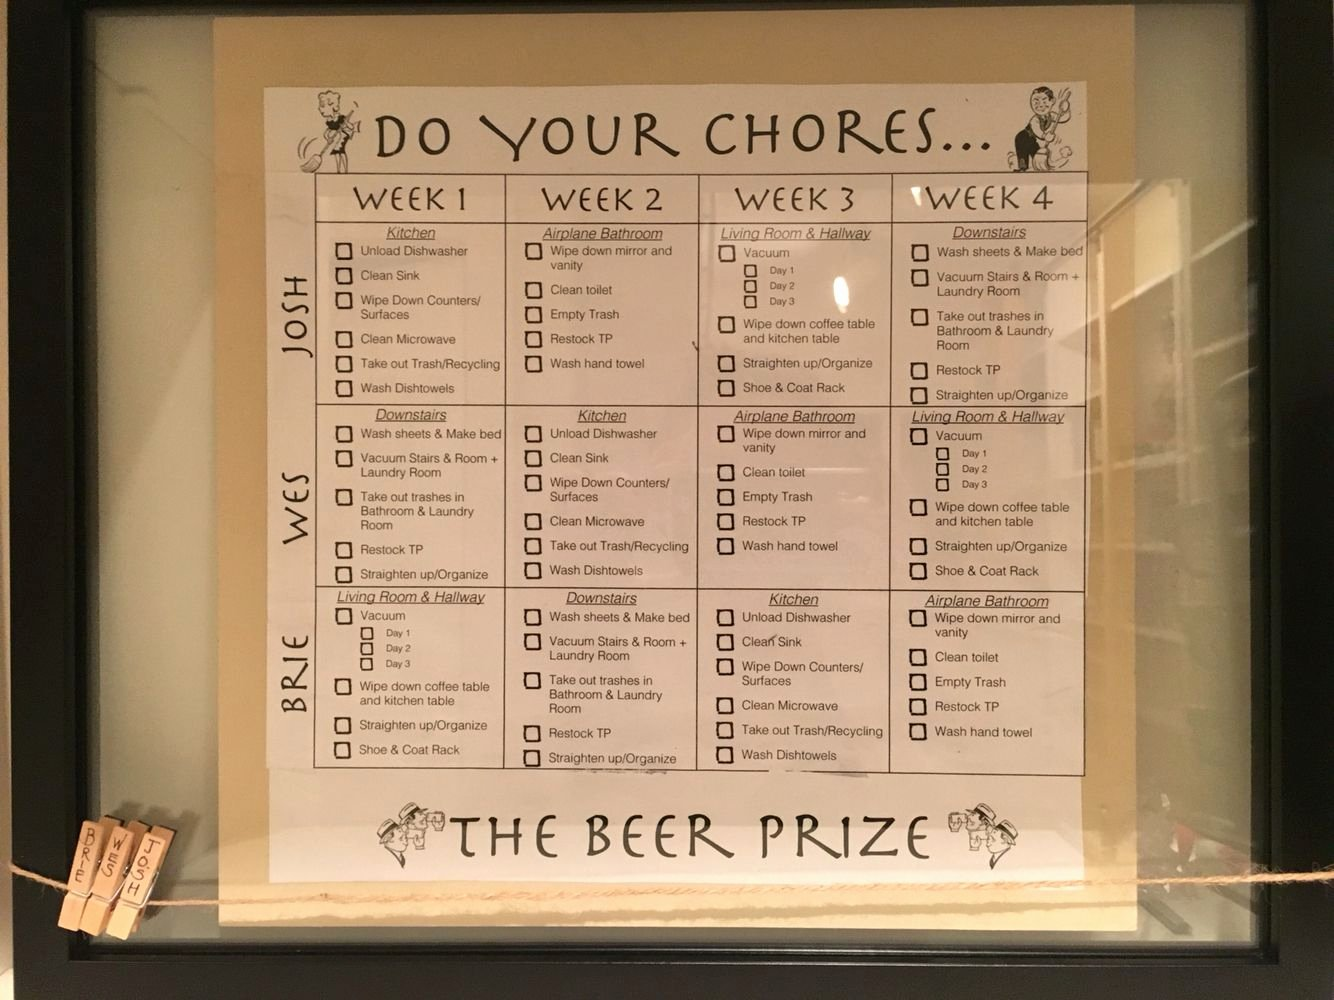 Roommate Chore Chart Template New Roommate Chore Chart Do All Your Chores You Beer at